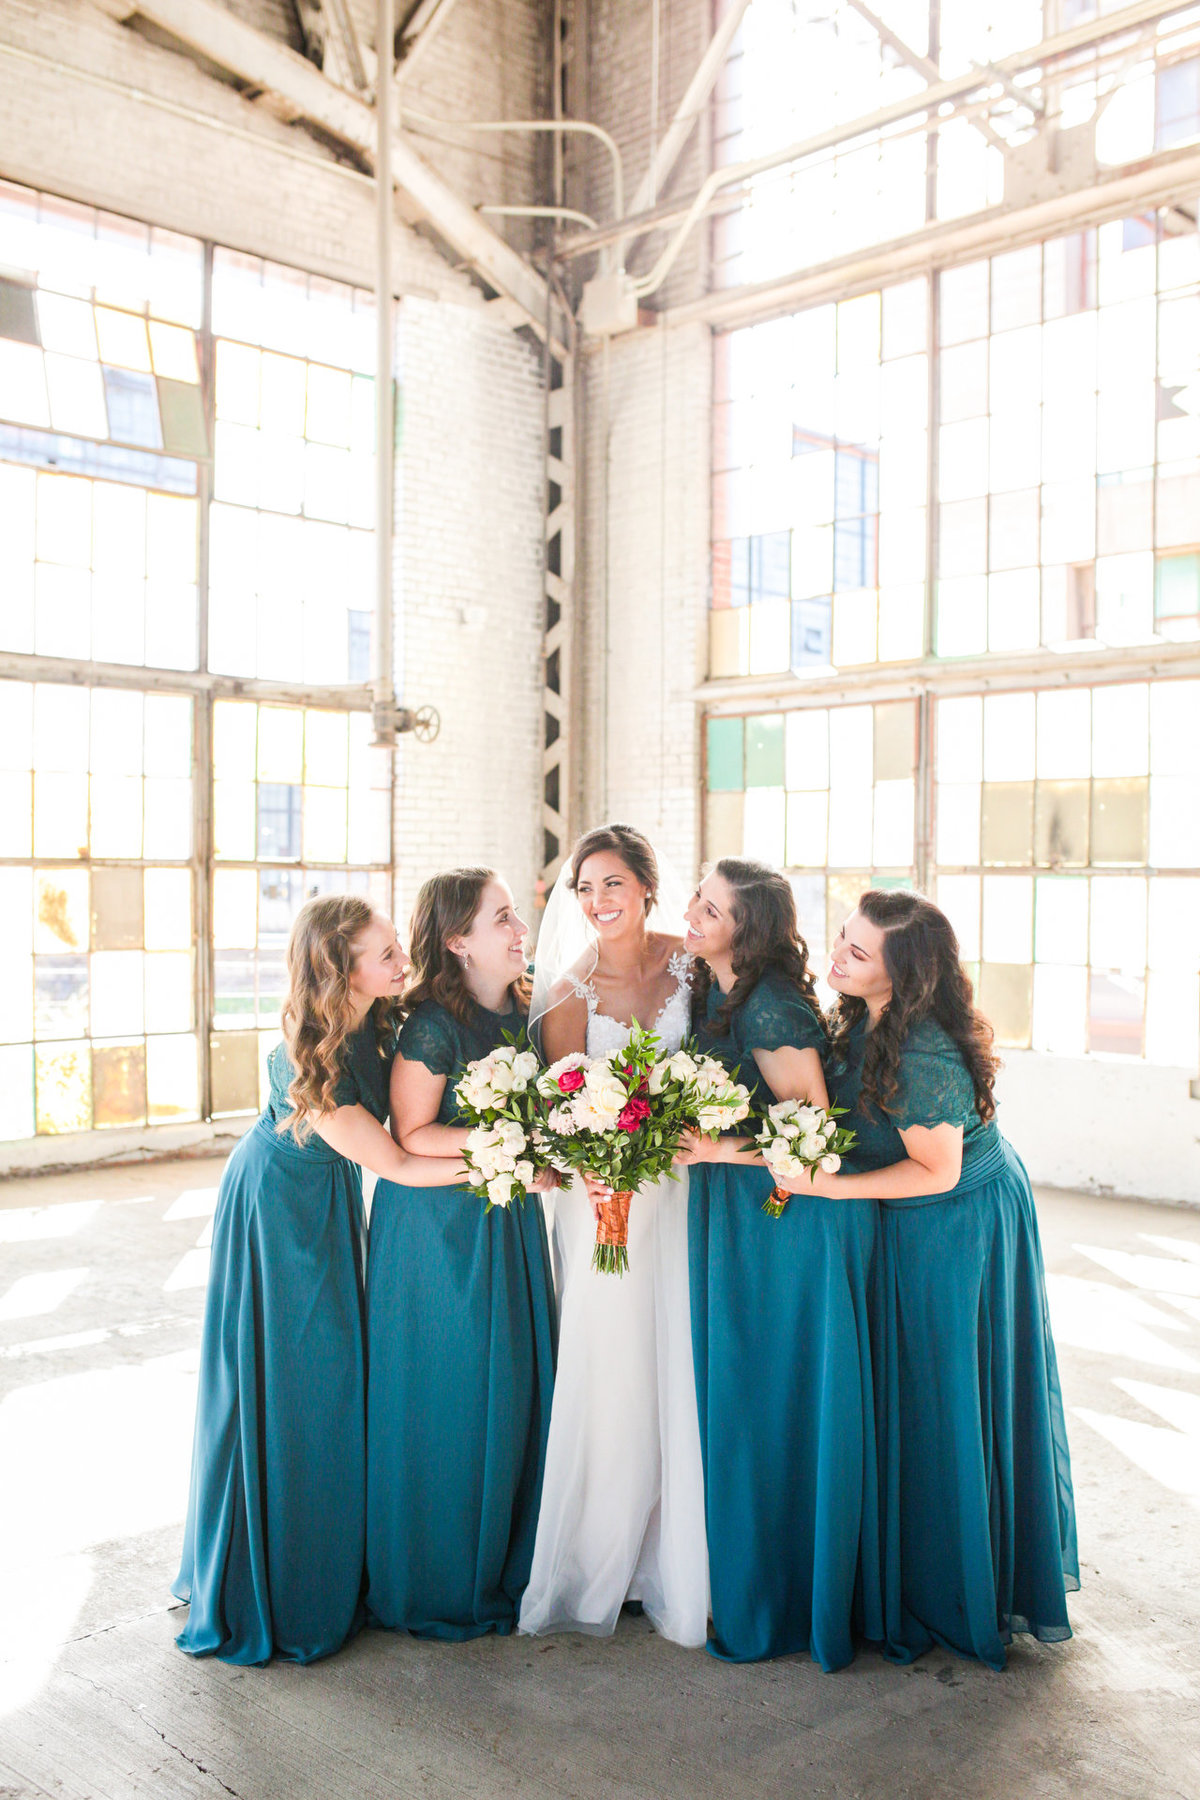 Albuquerque Wedding Photographer_Abq Rail Yards Reception_www.tylerbrooke.com_014